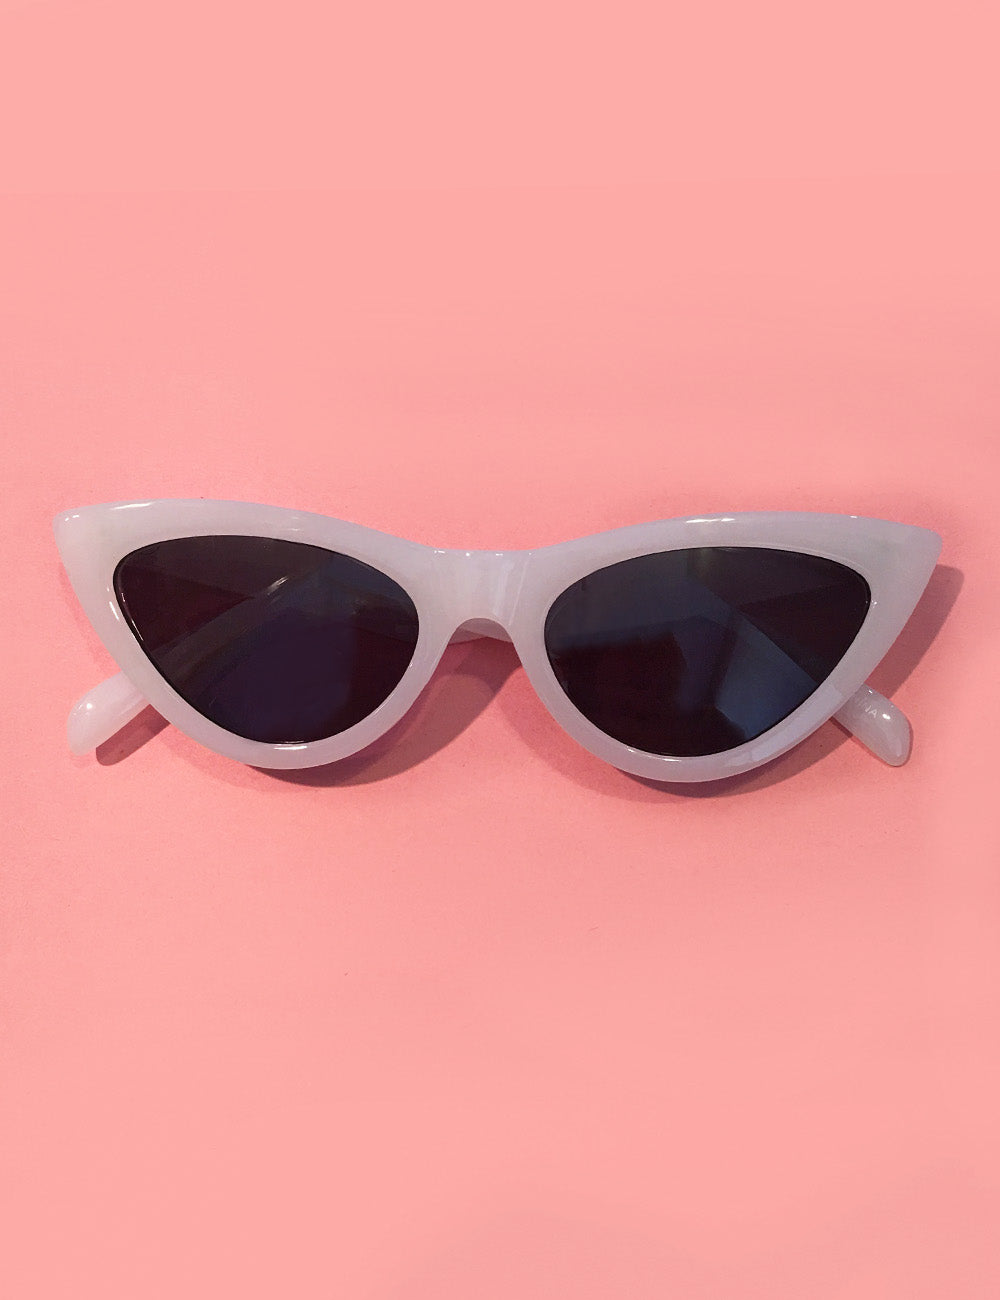 Solid White Classic 1950s Cat Eye Sunglasses